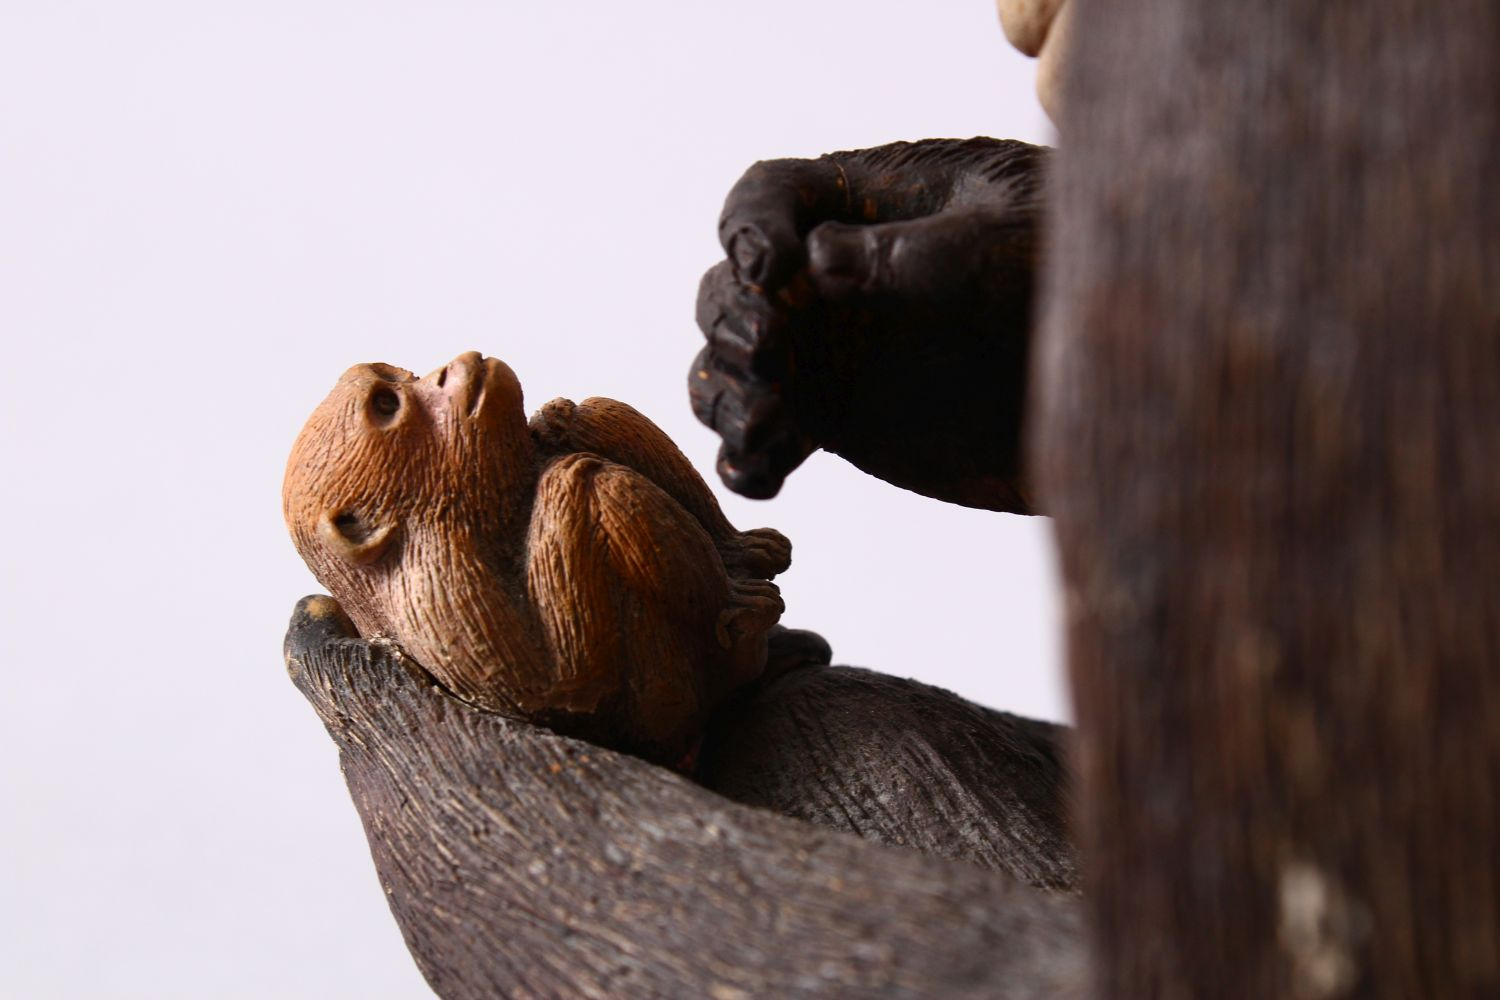 A JAPANESE POTTERY / TERRACOTTA MODEL OF A SEATED MONKEY, the monkey in a seated position holding - Image 7 of 10